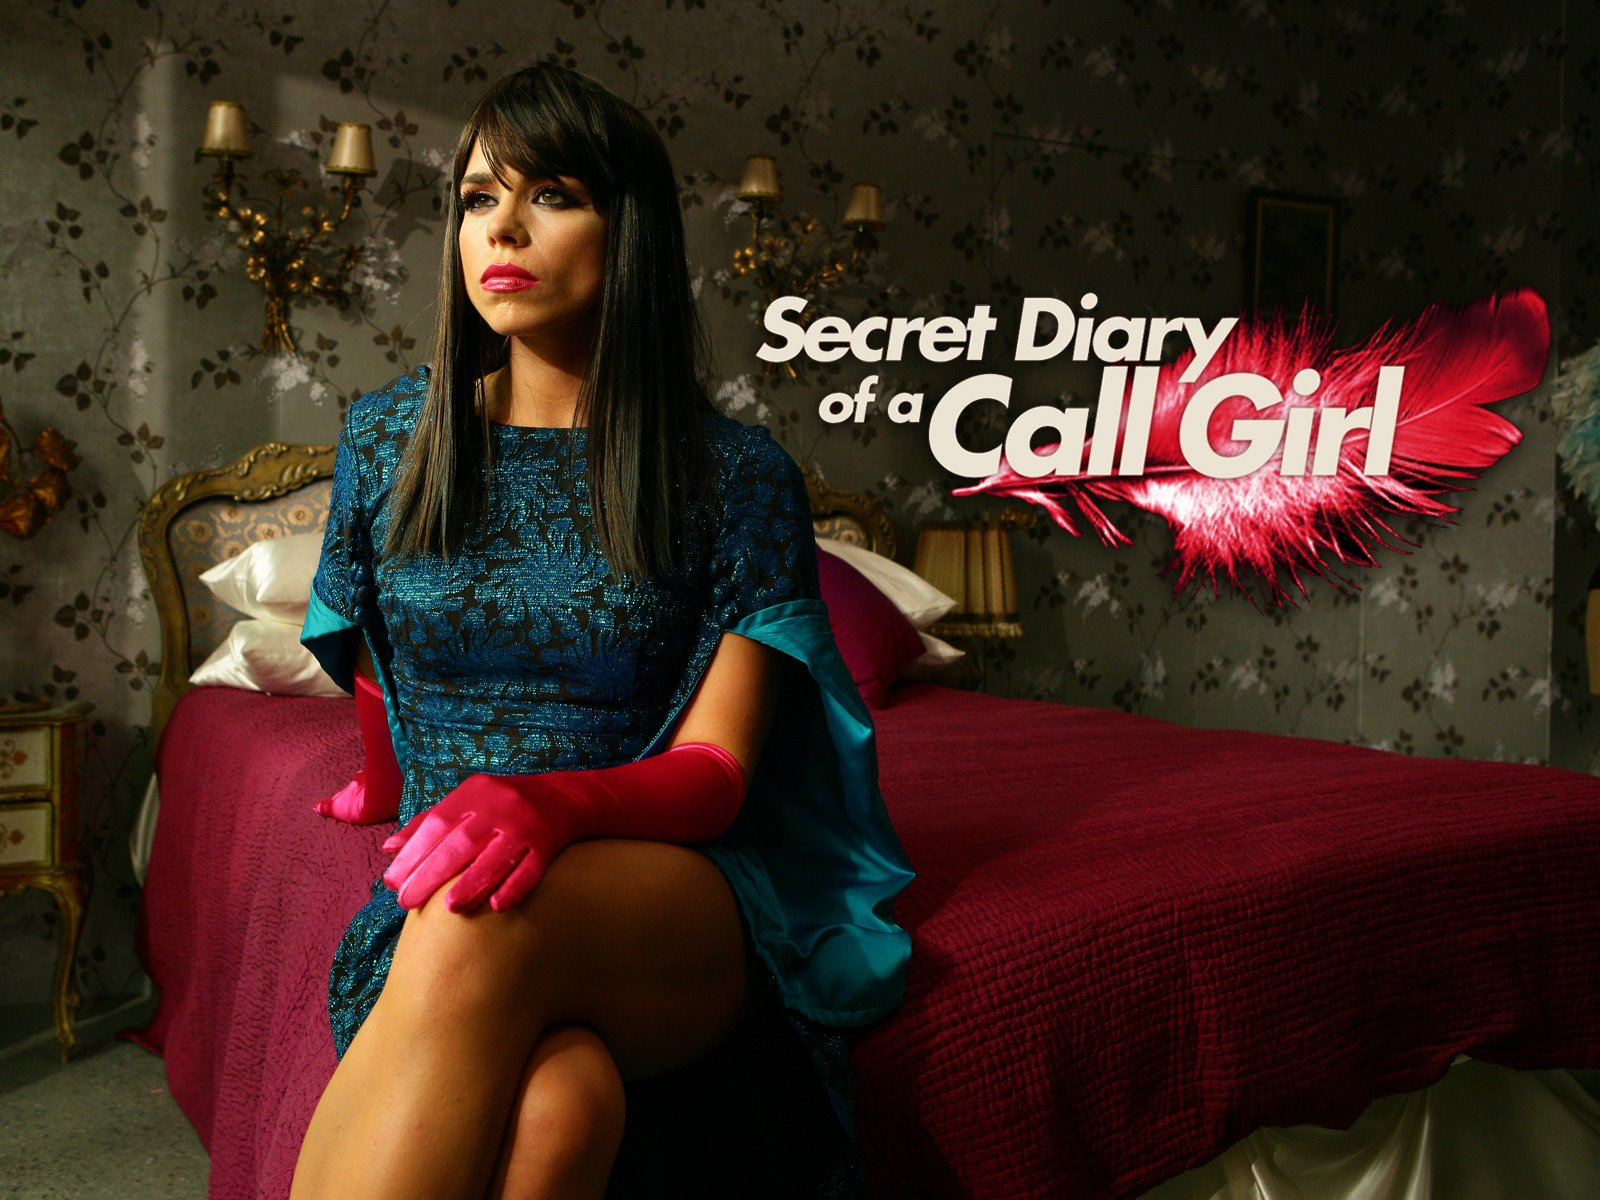 Watch secret diary of call girl